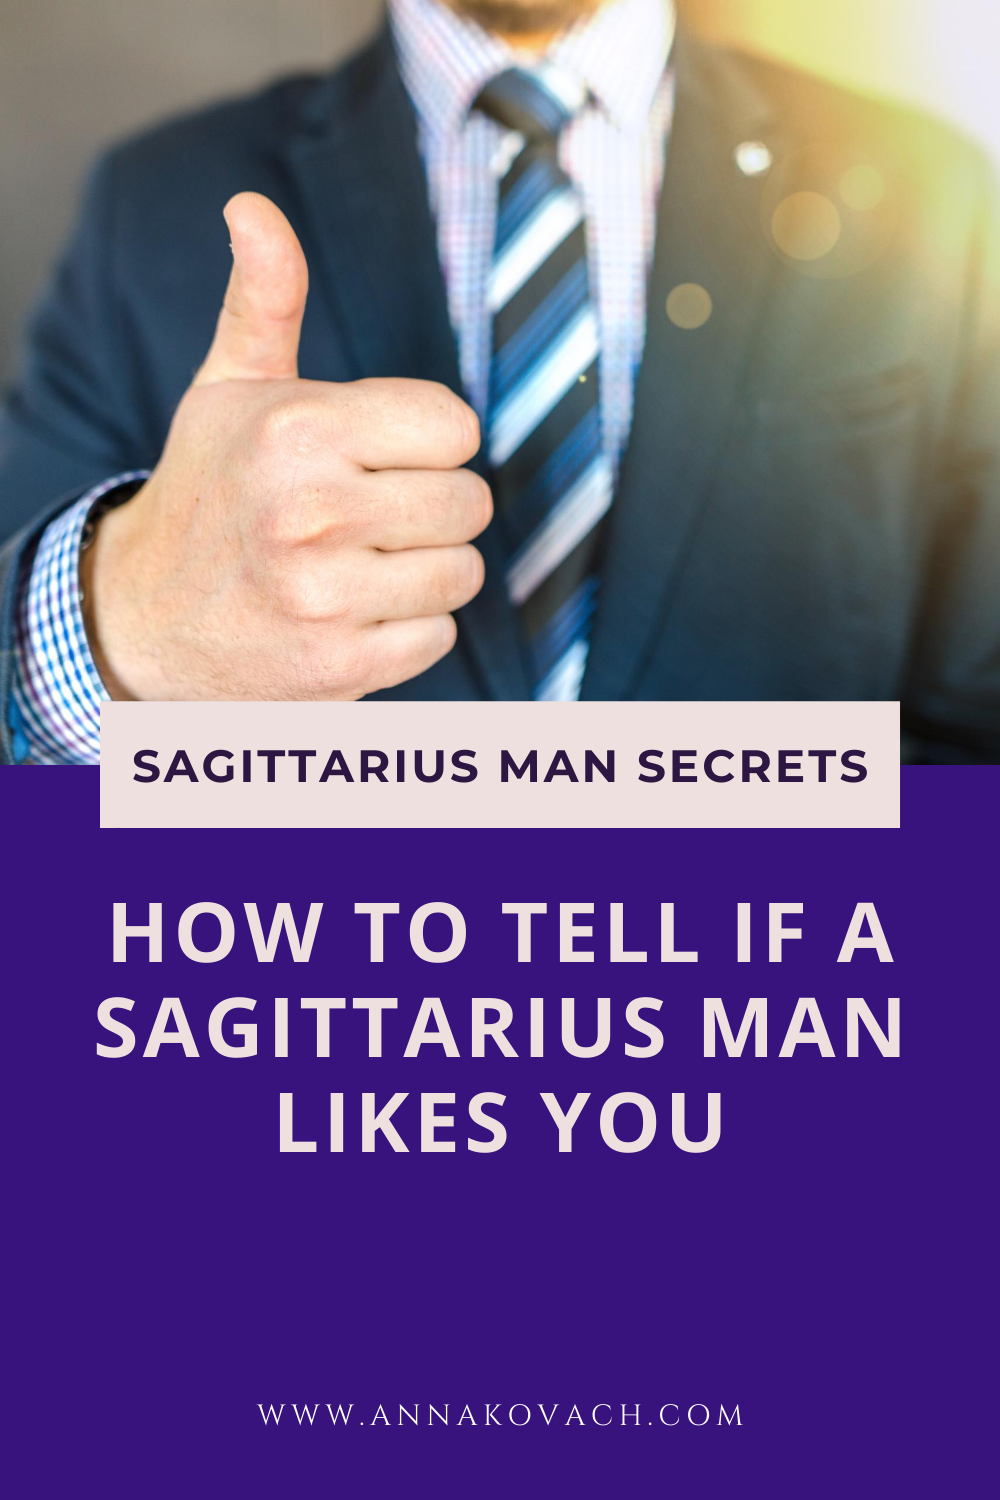 How to Tell If a Sagittarius Man Likes You for Sure? 5